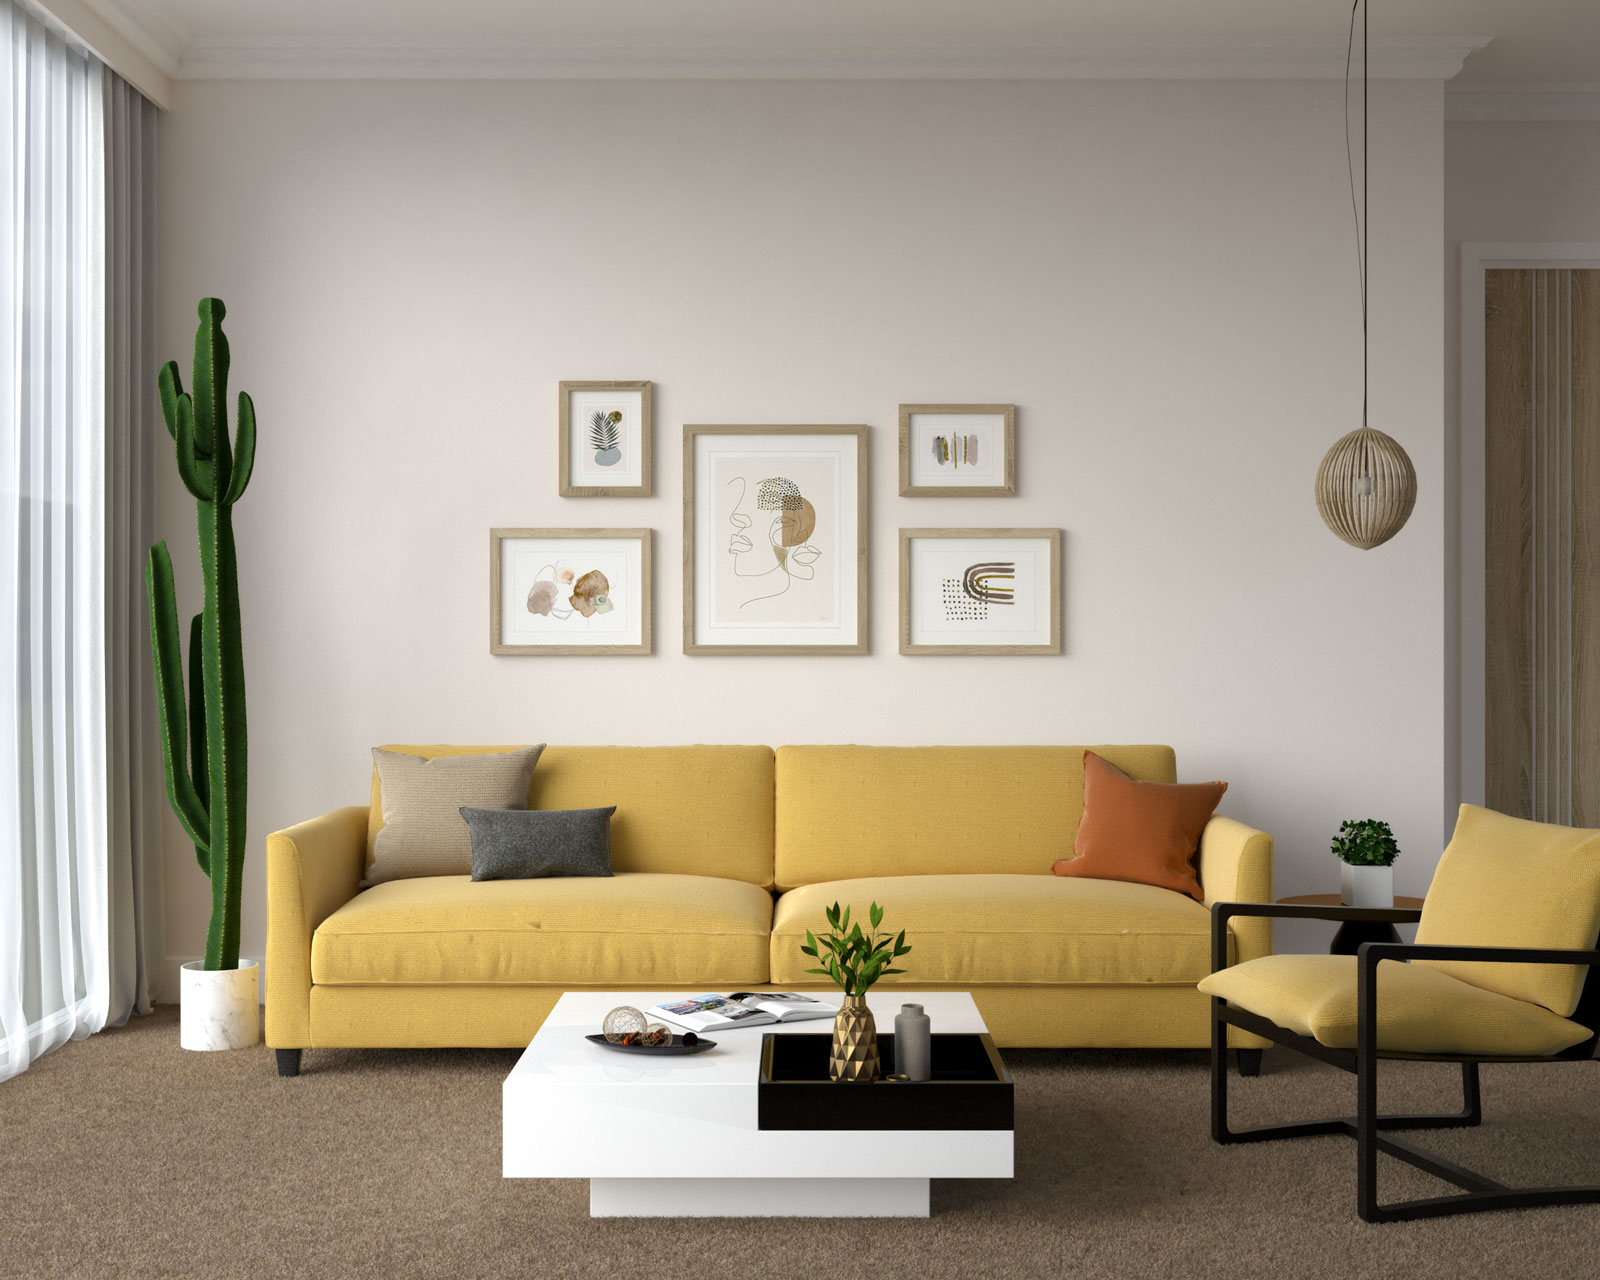 Yellow couch with brown floors